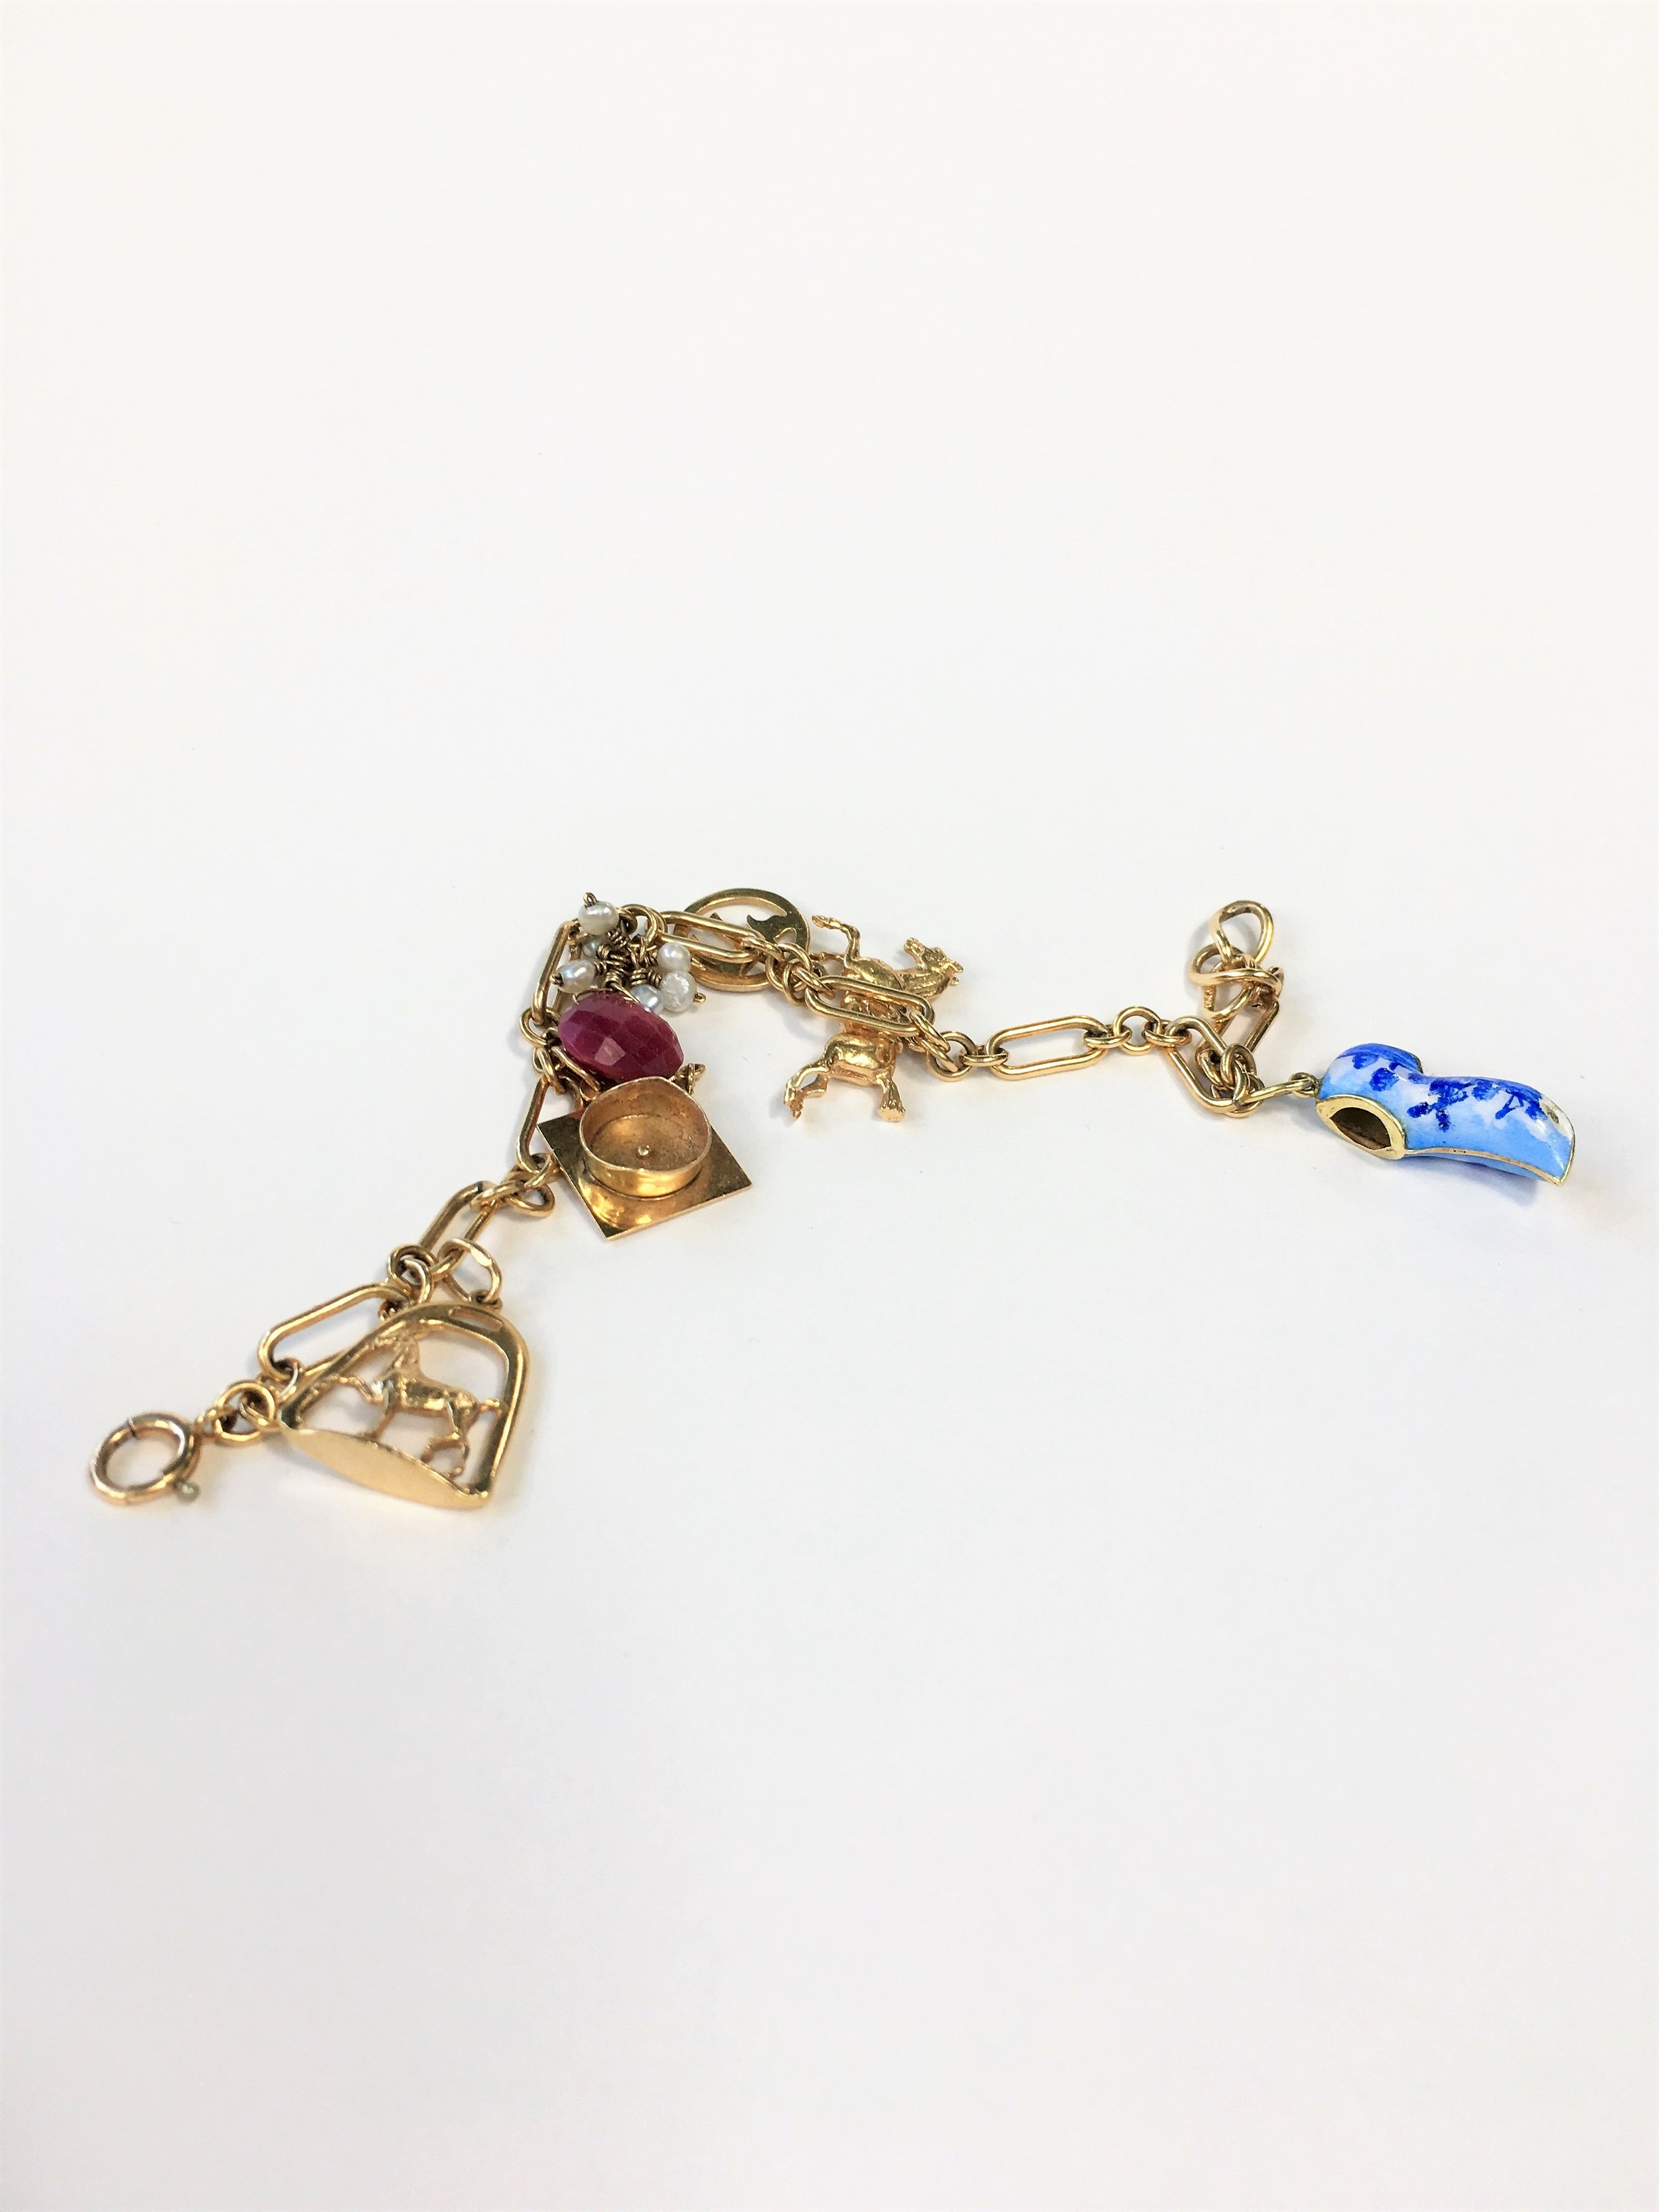 let me make you a custom charm bracelet using vintage charms. I'll take your interests and make a beautiful heirloom piece.